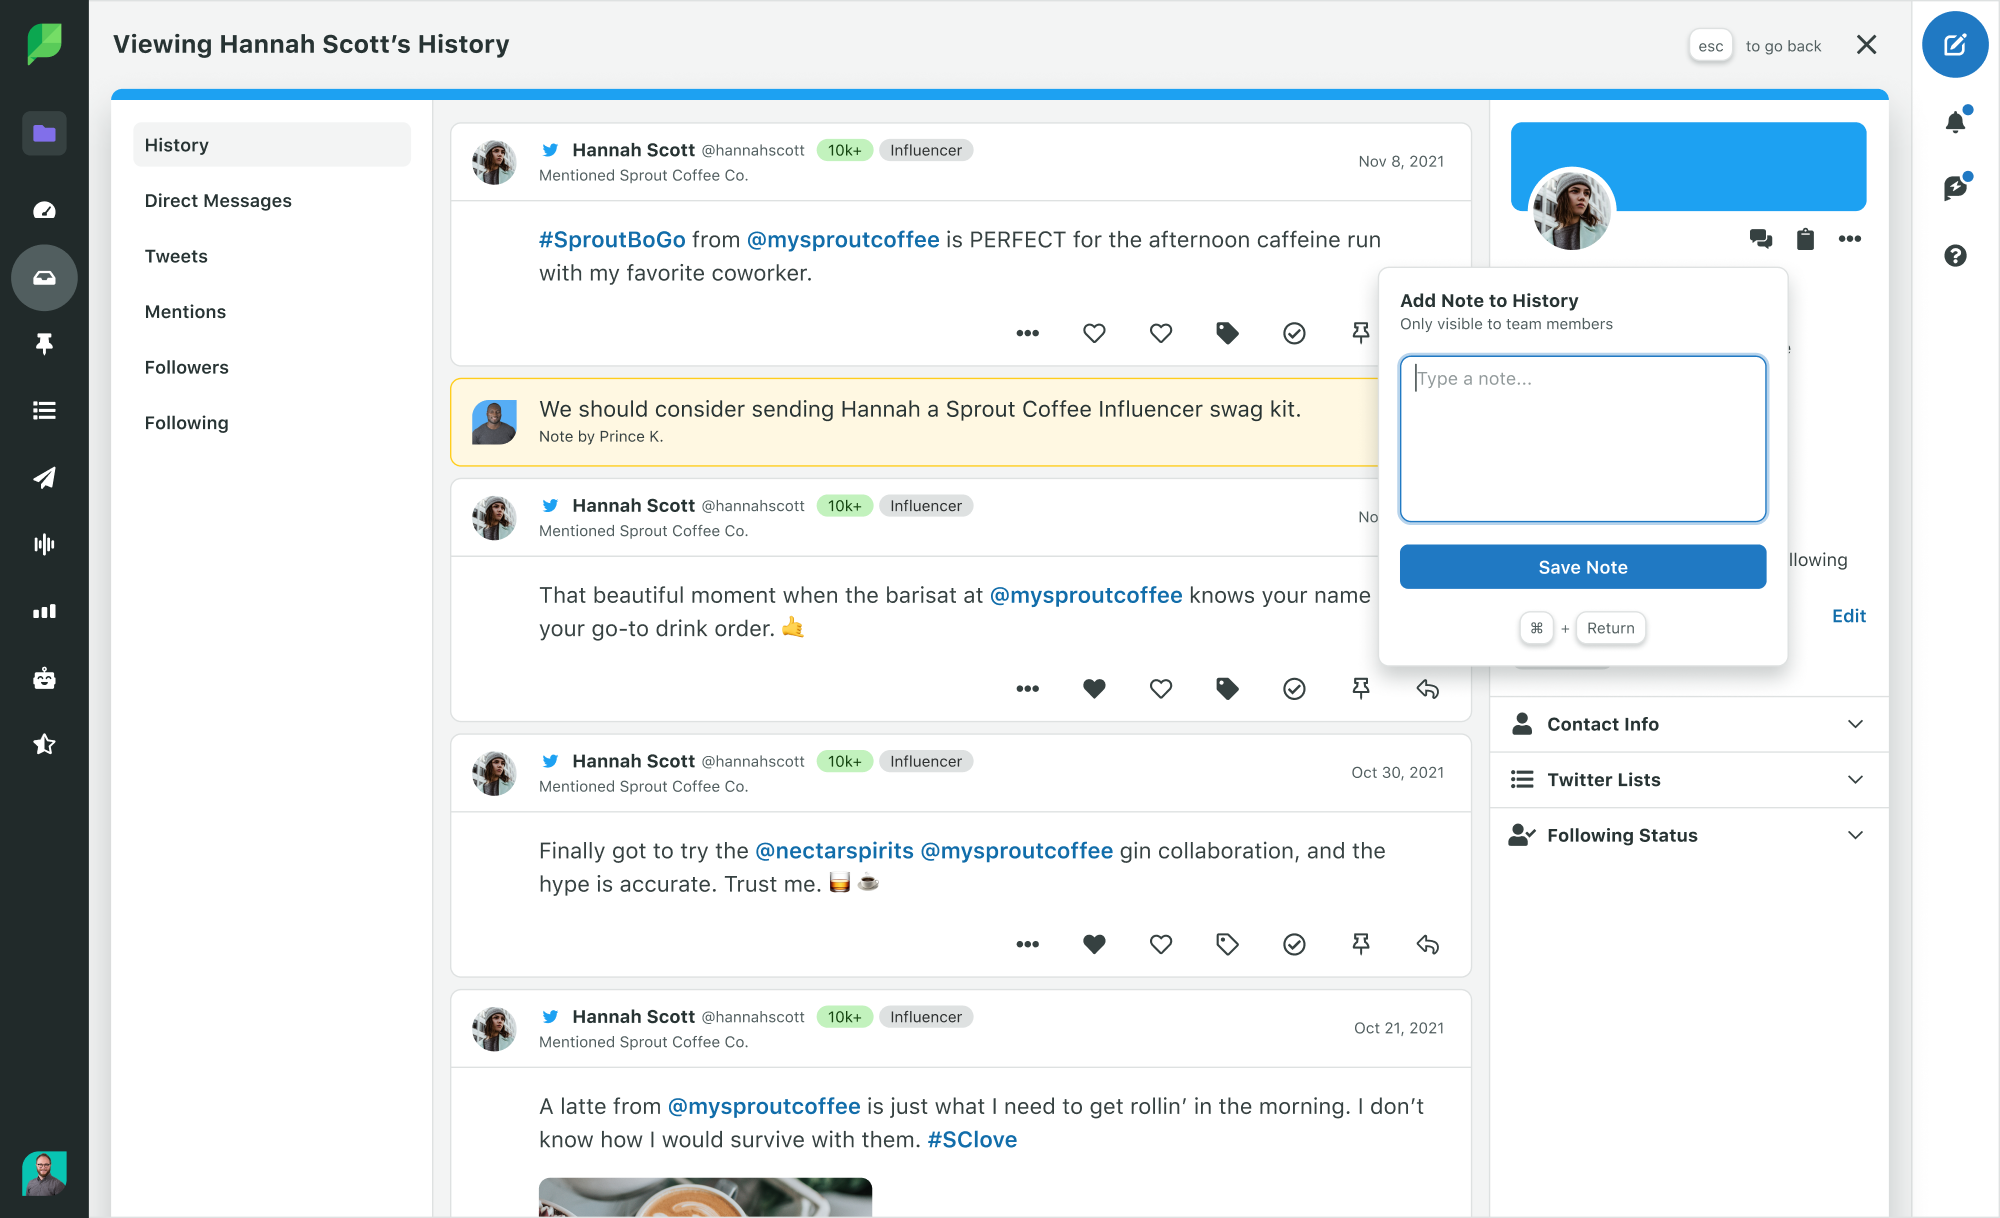 Sprout Social Product Image of Engagement Contact View with Twitter Conversation History Add Note